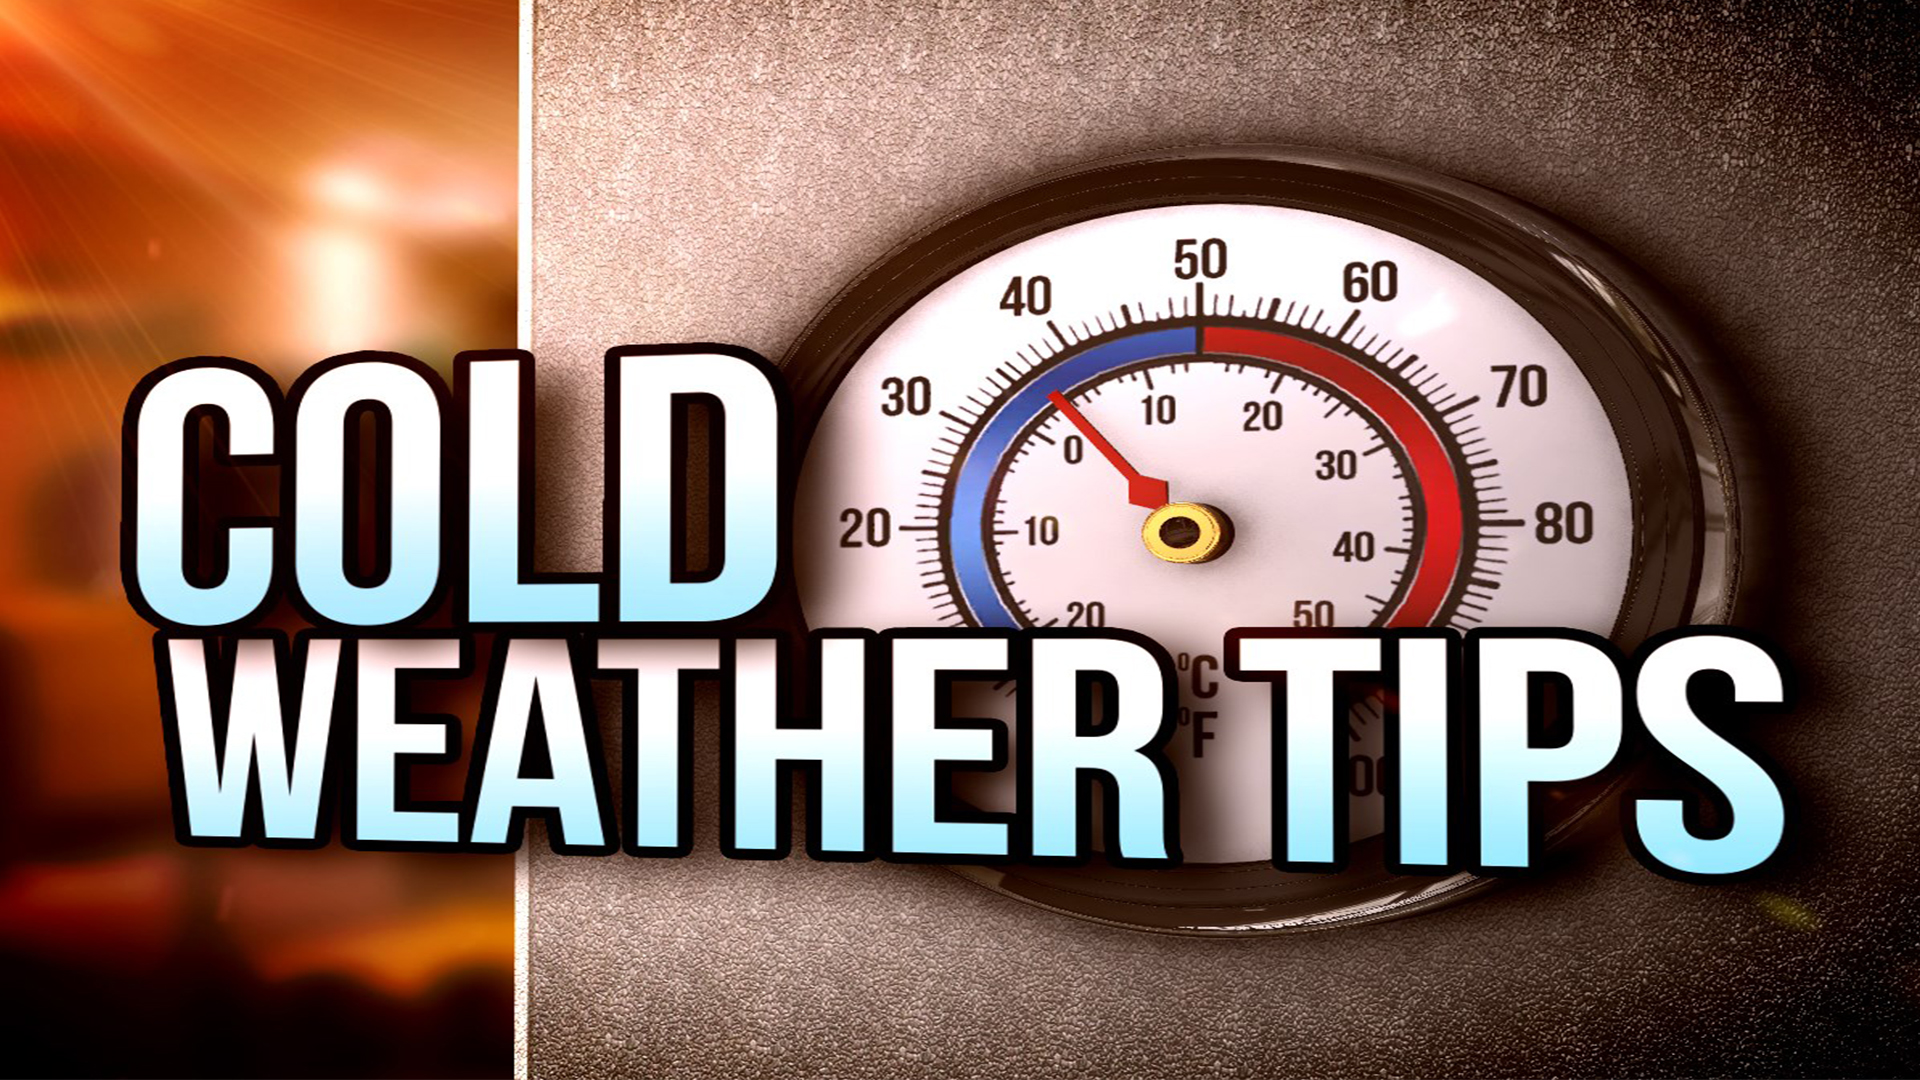 cold weather tips_1512484968341.jpg